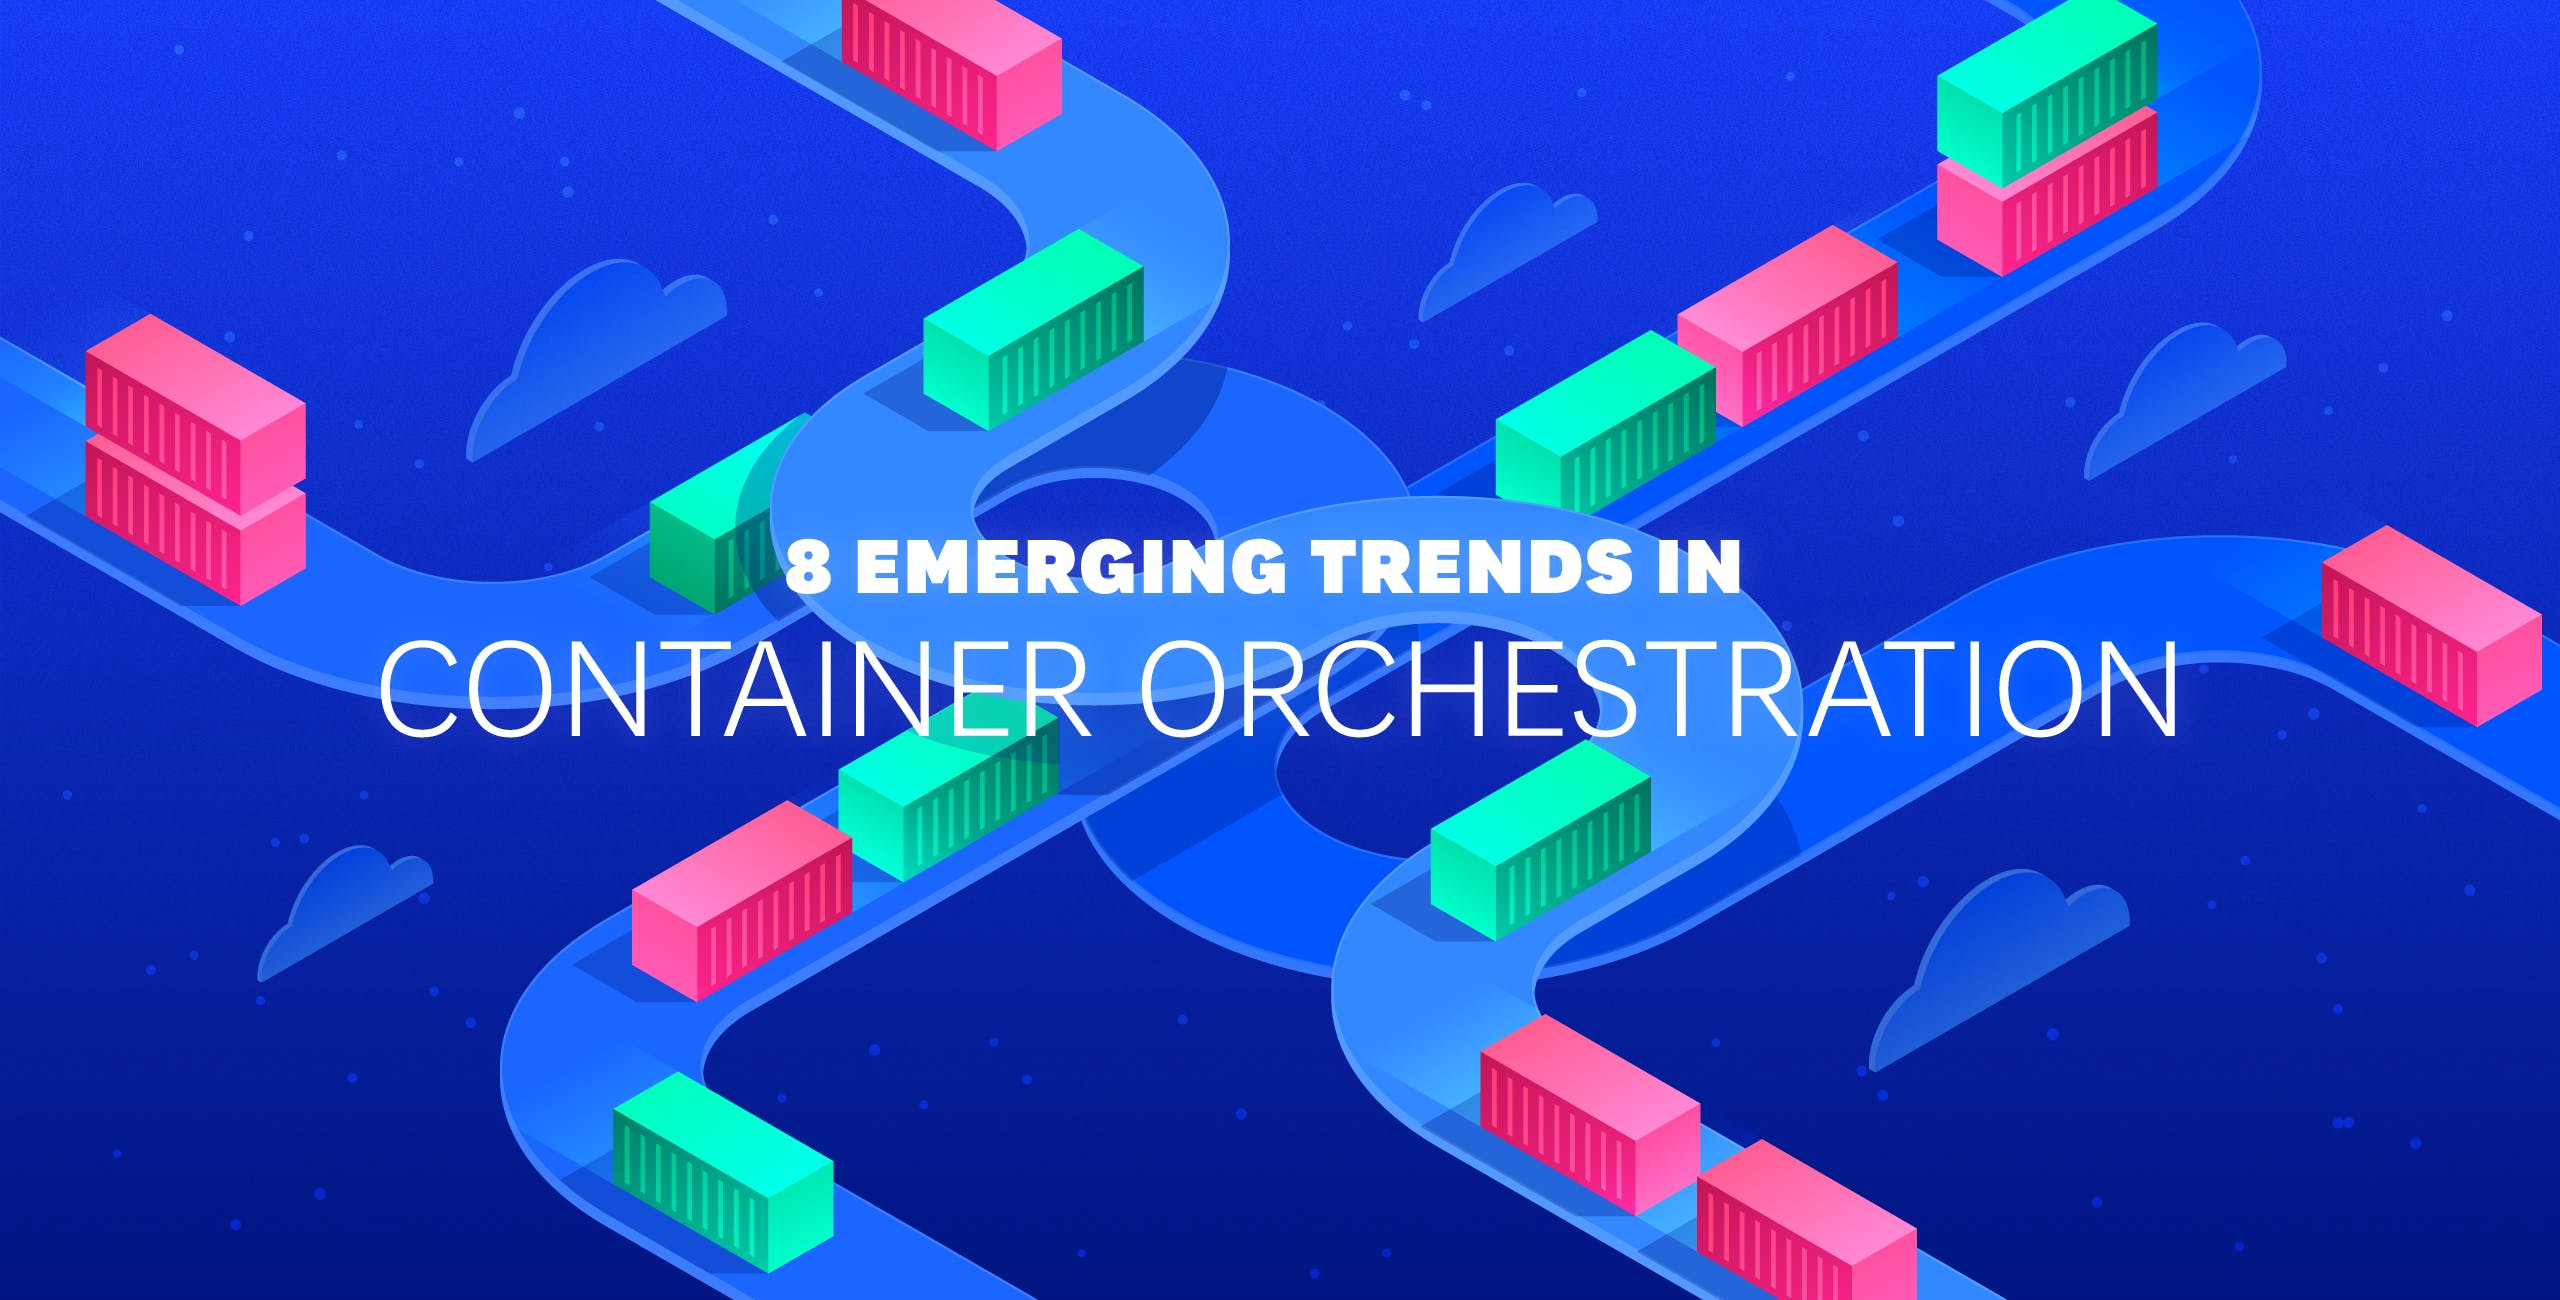 8 emerging trends in container orchestration